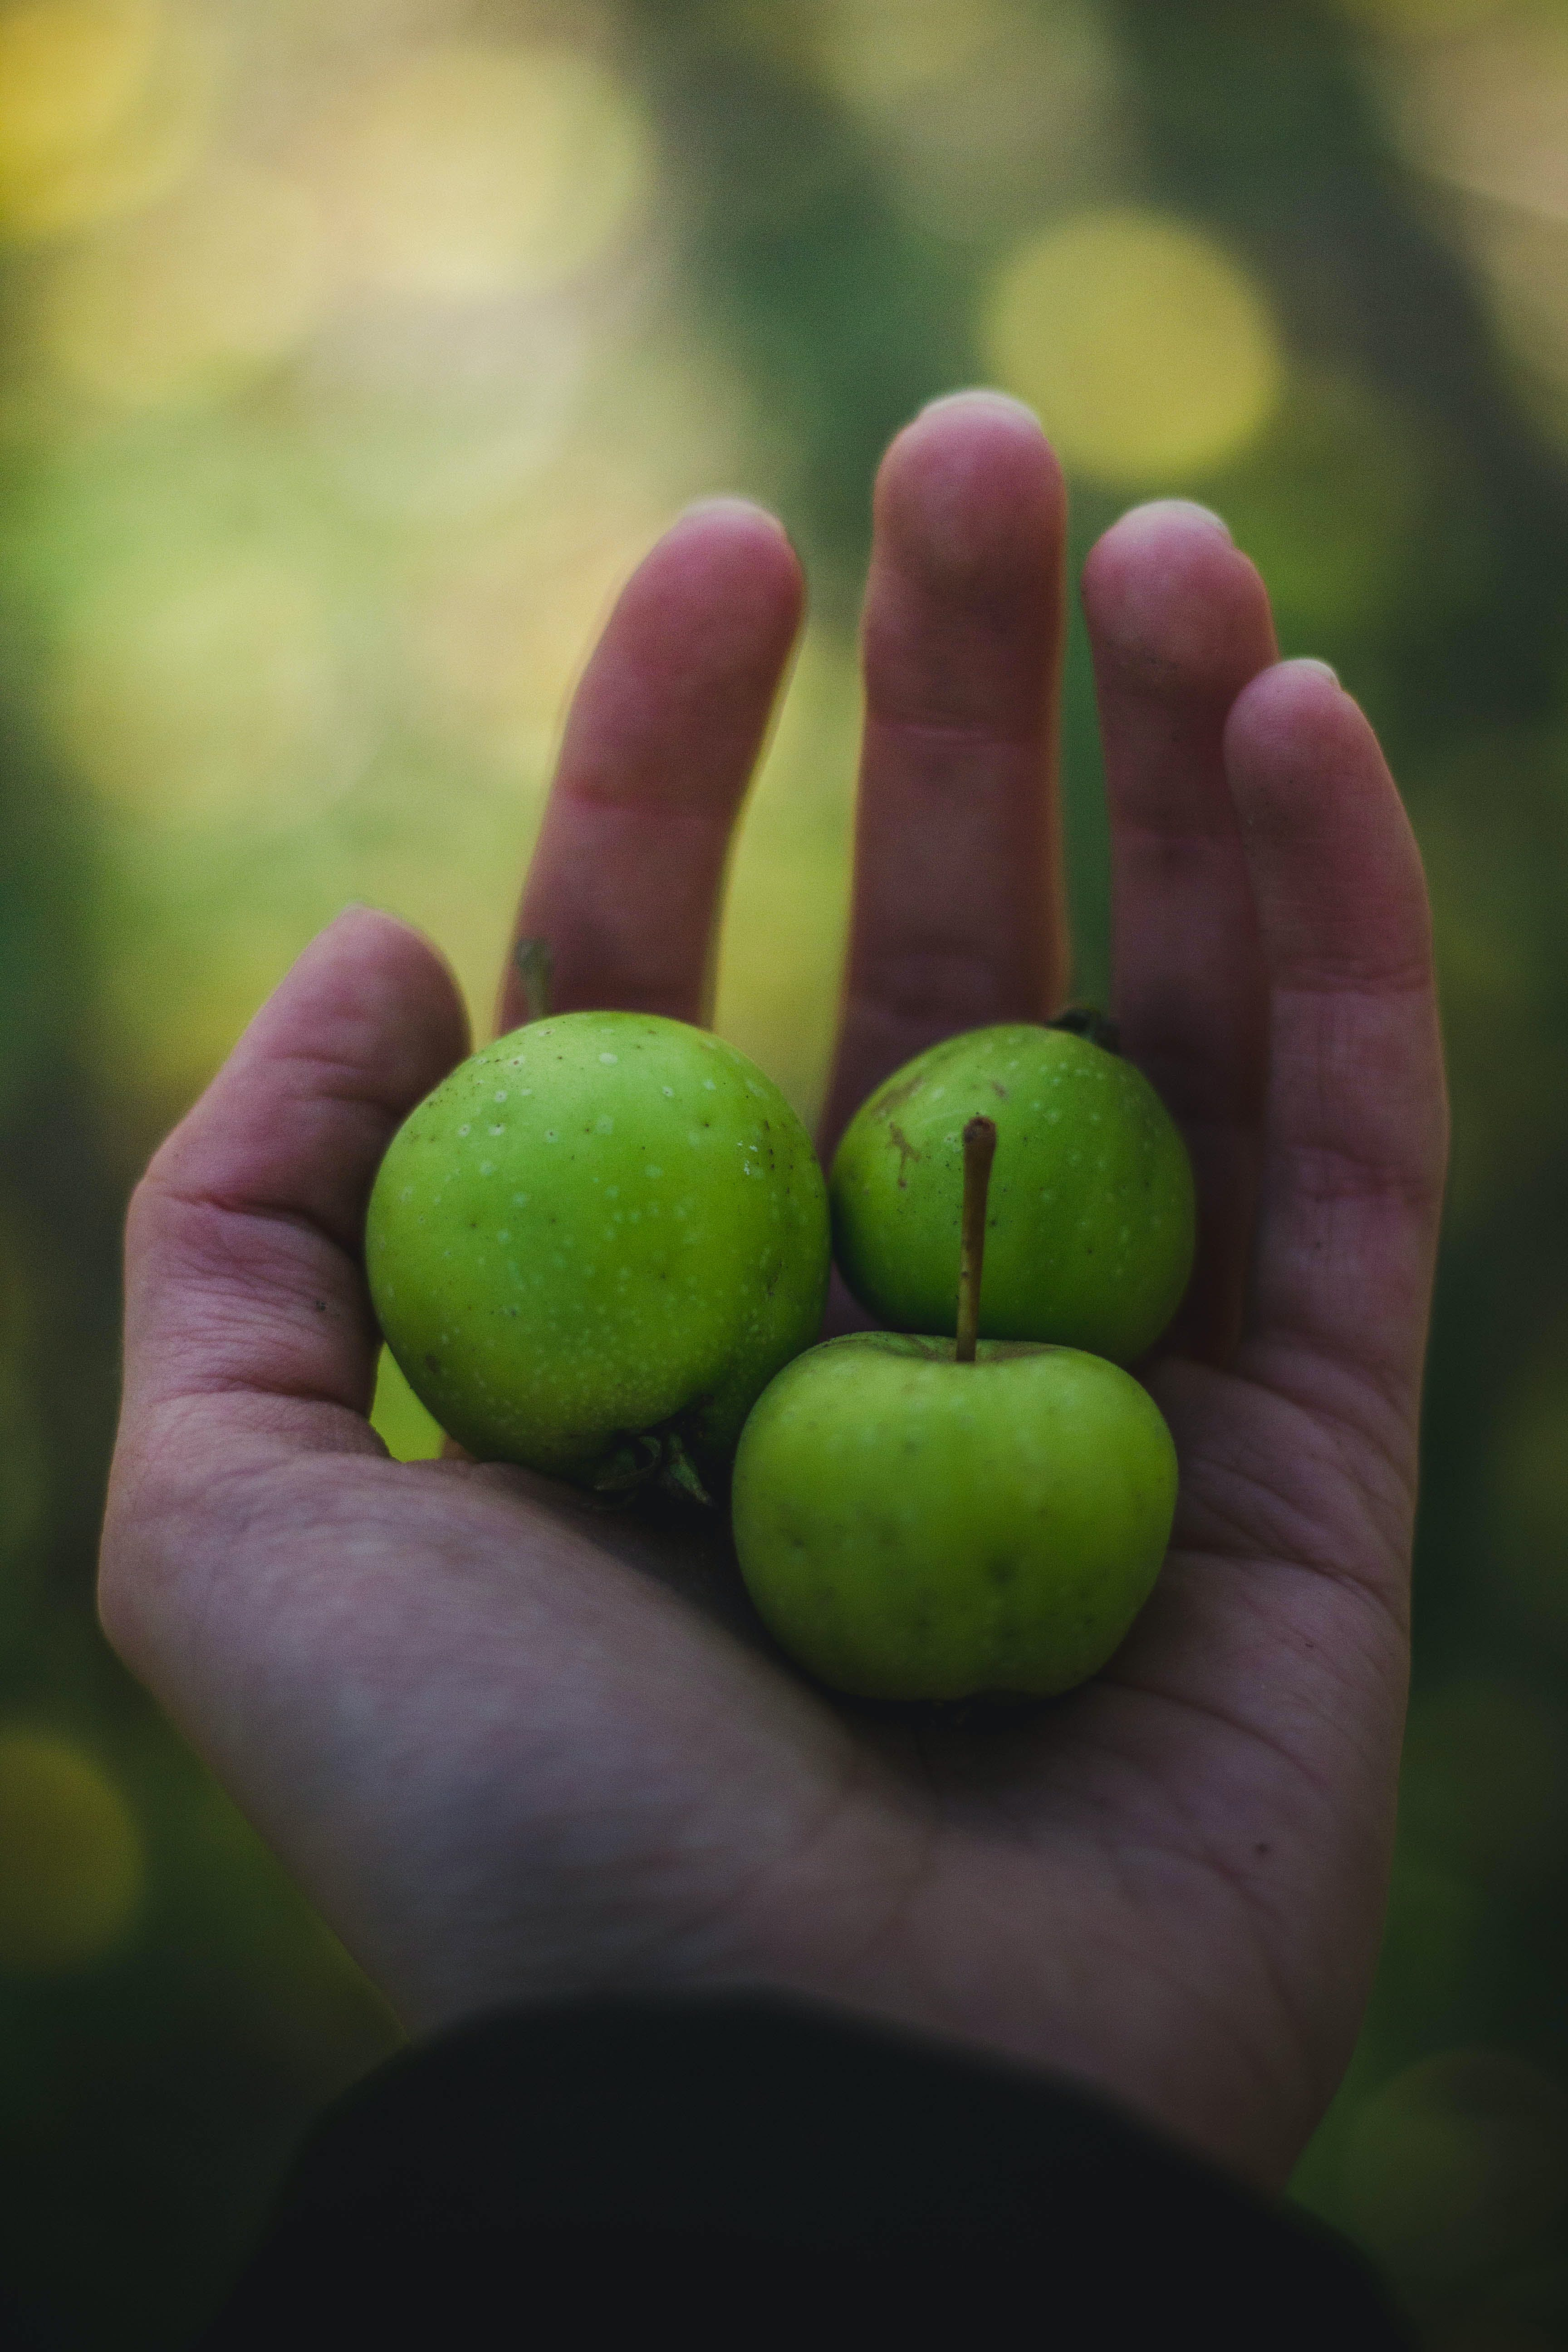 Three Round Green Fruits on Person's Left Palm